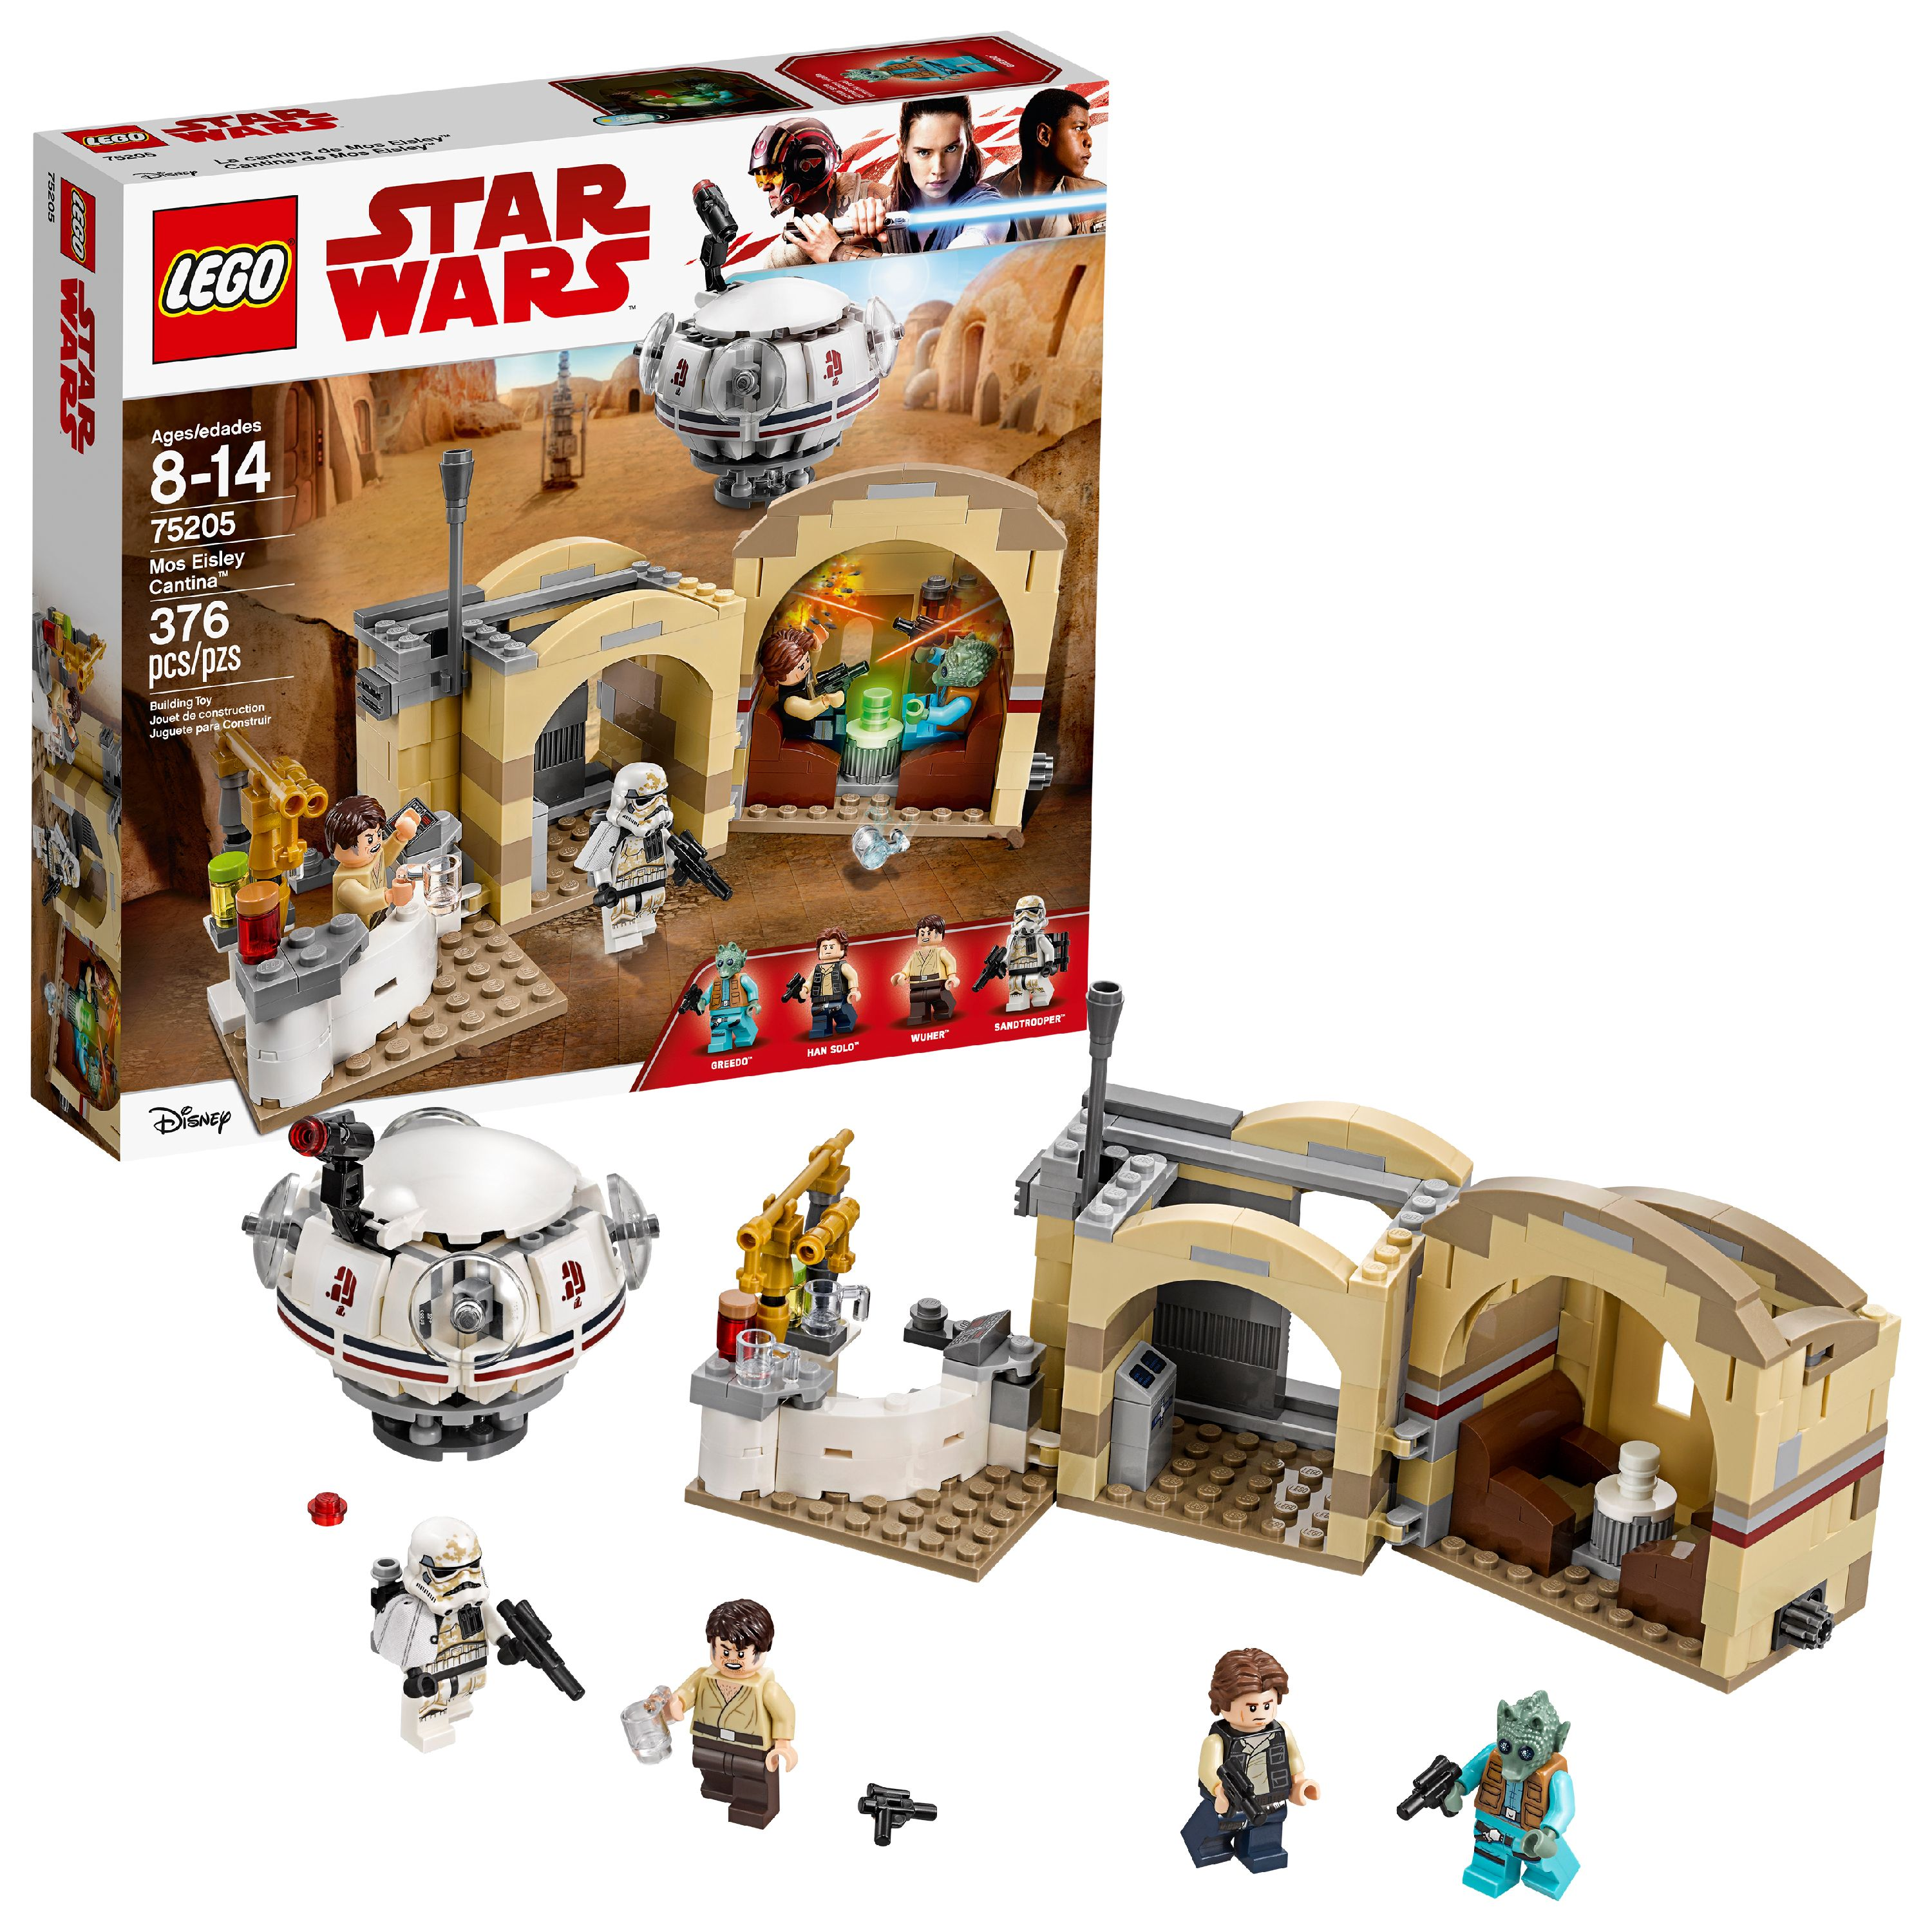 LEGO Star Wars™ Mos Eisley Cantina™ 75205 (376 Pieces)